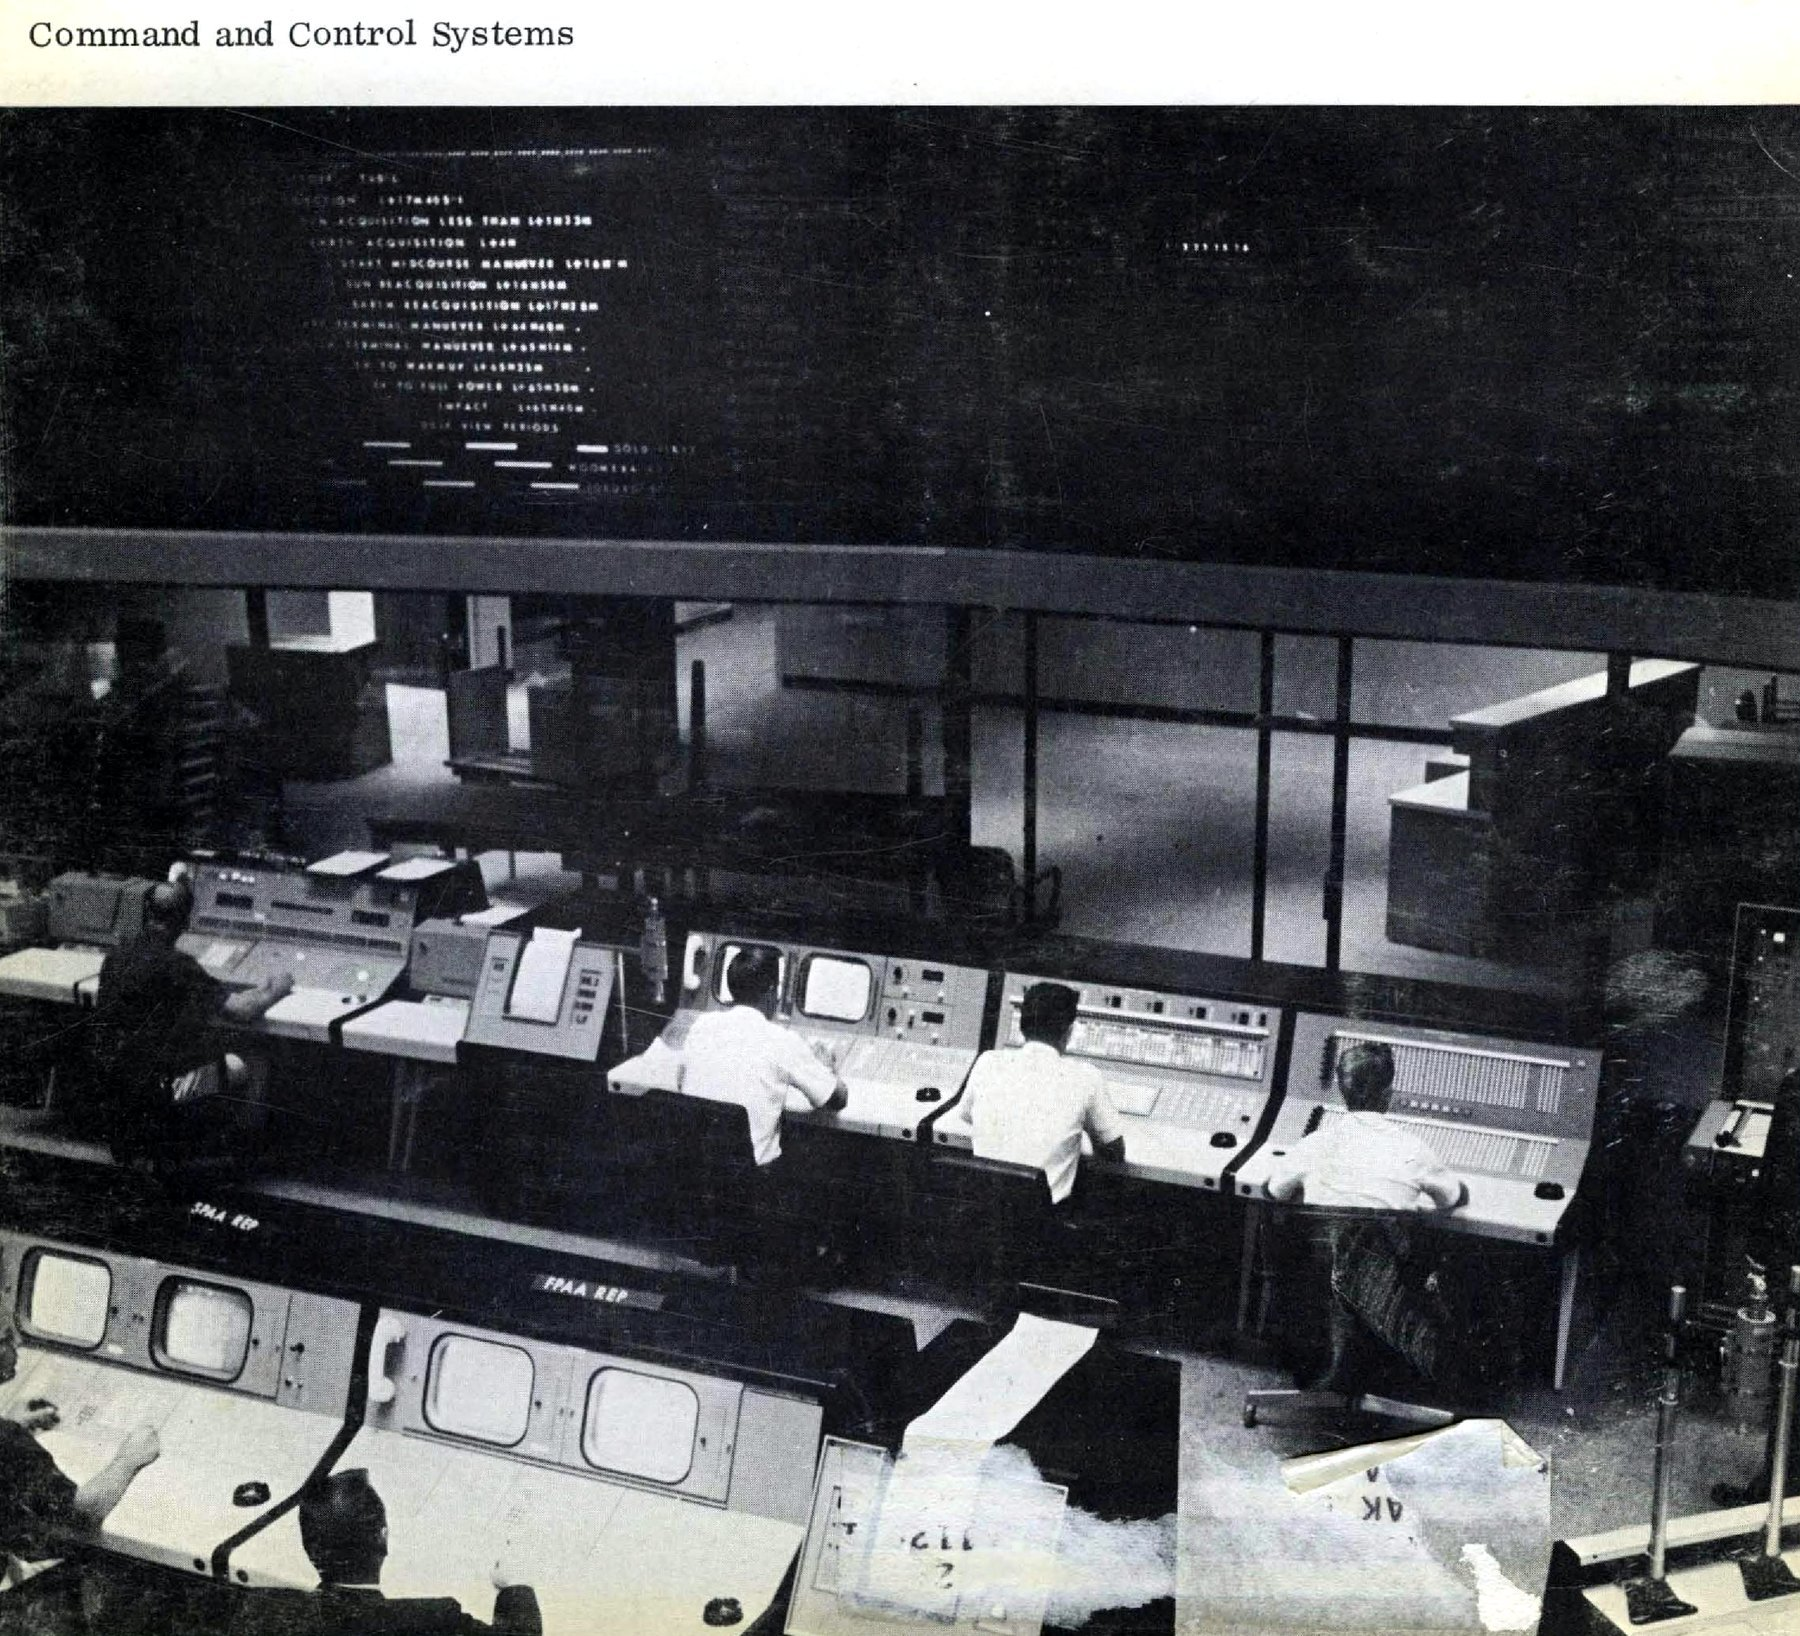 Command and control systems 91962)